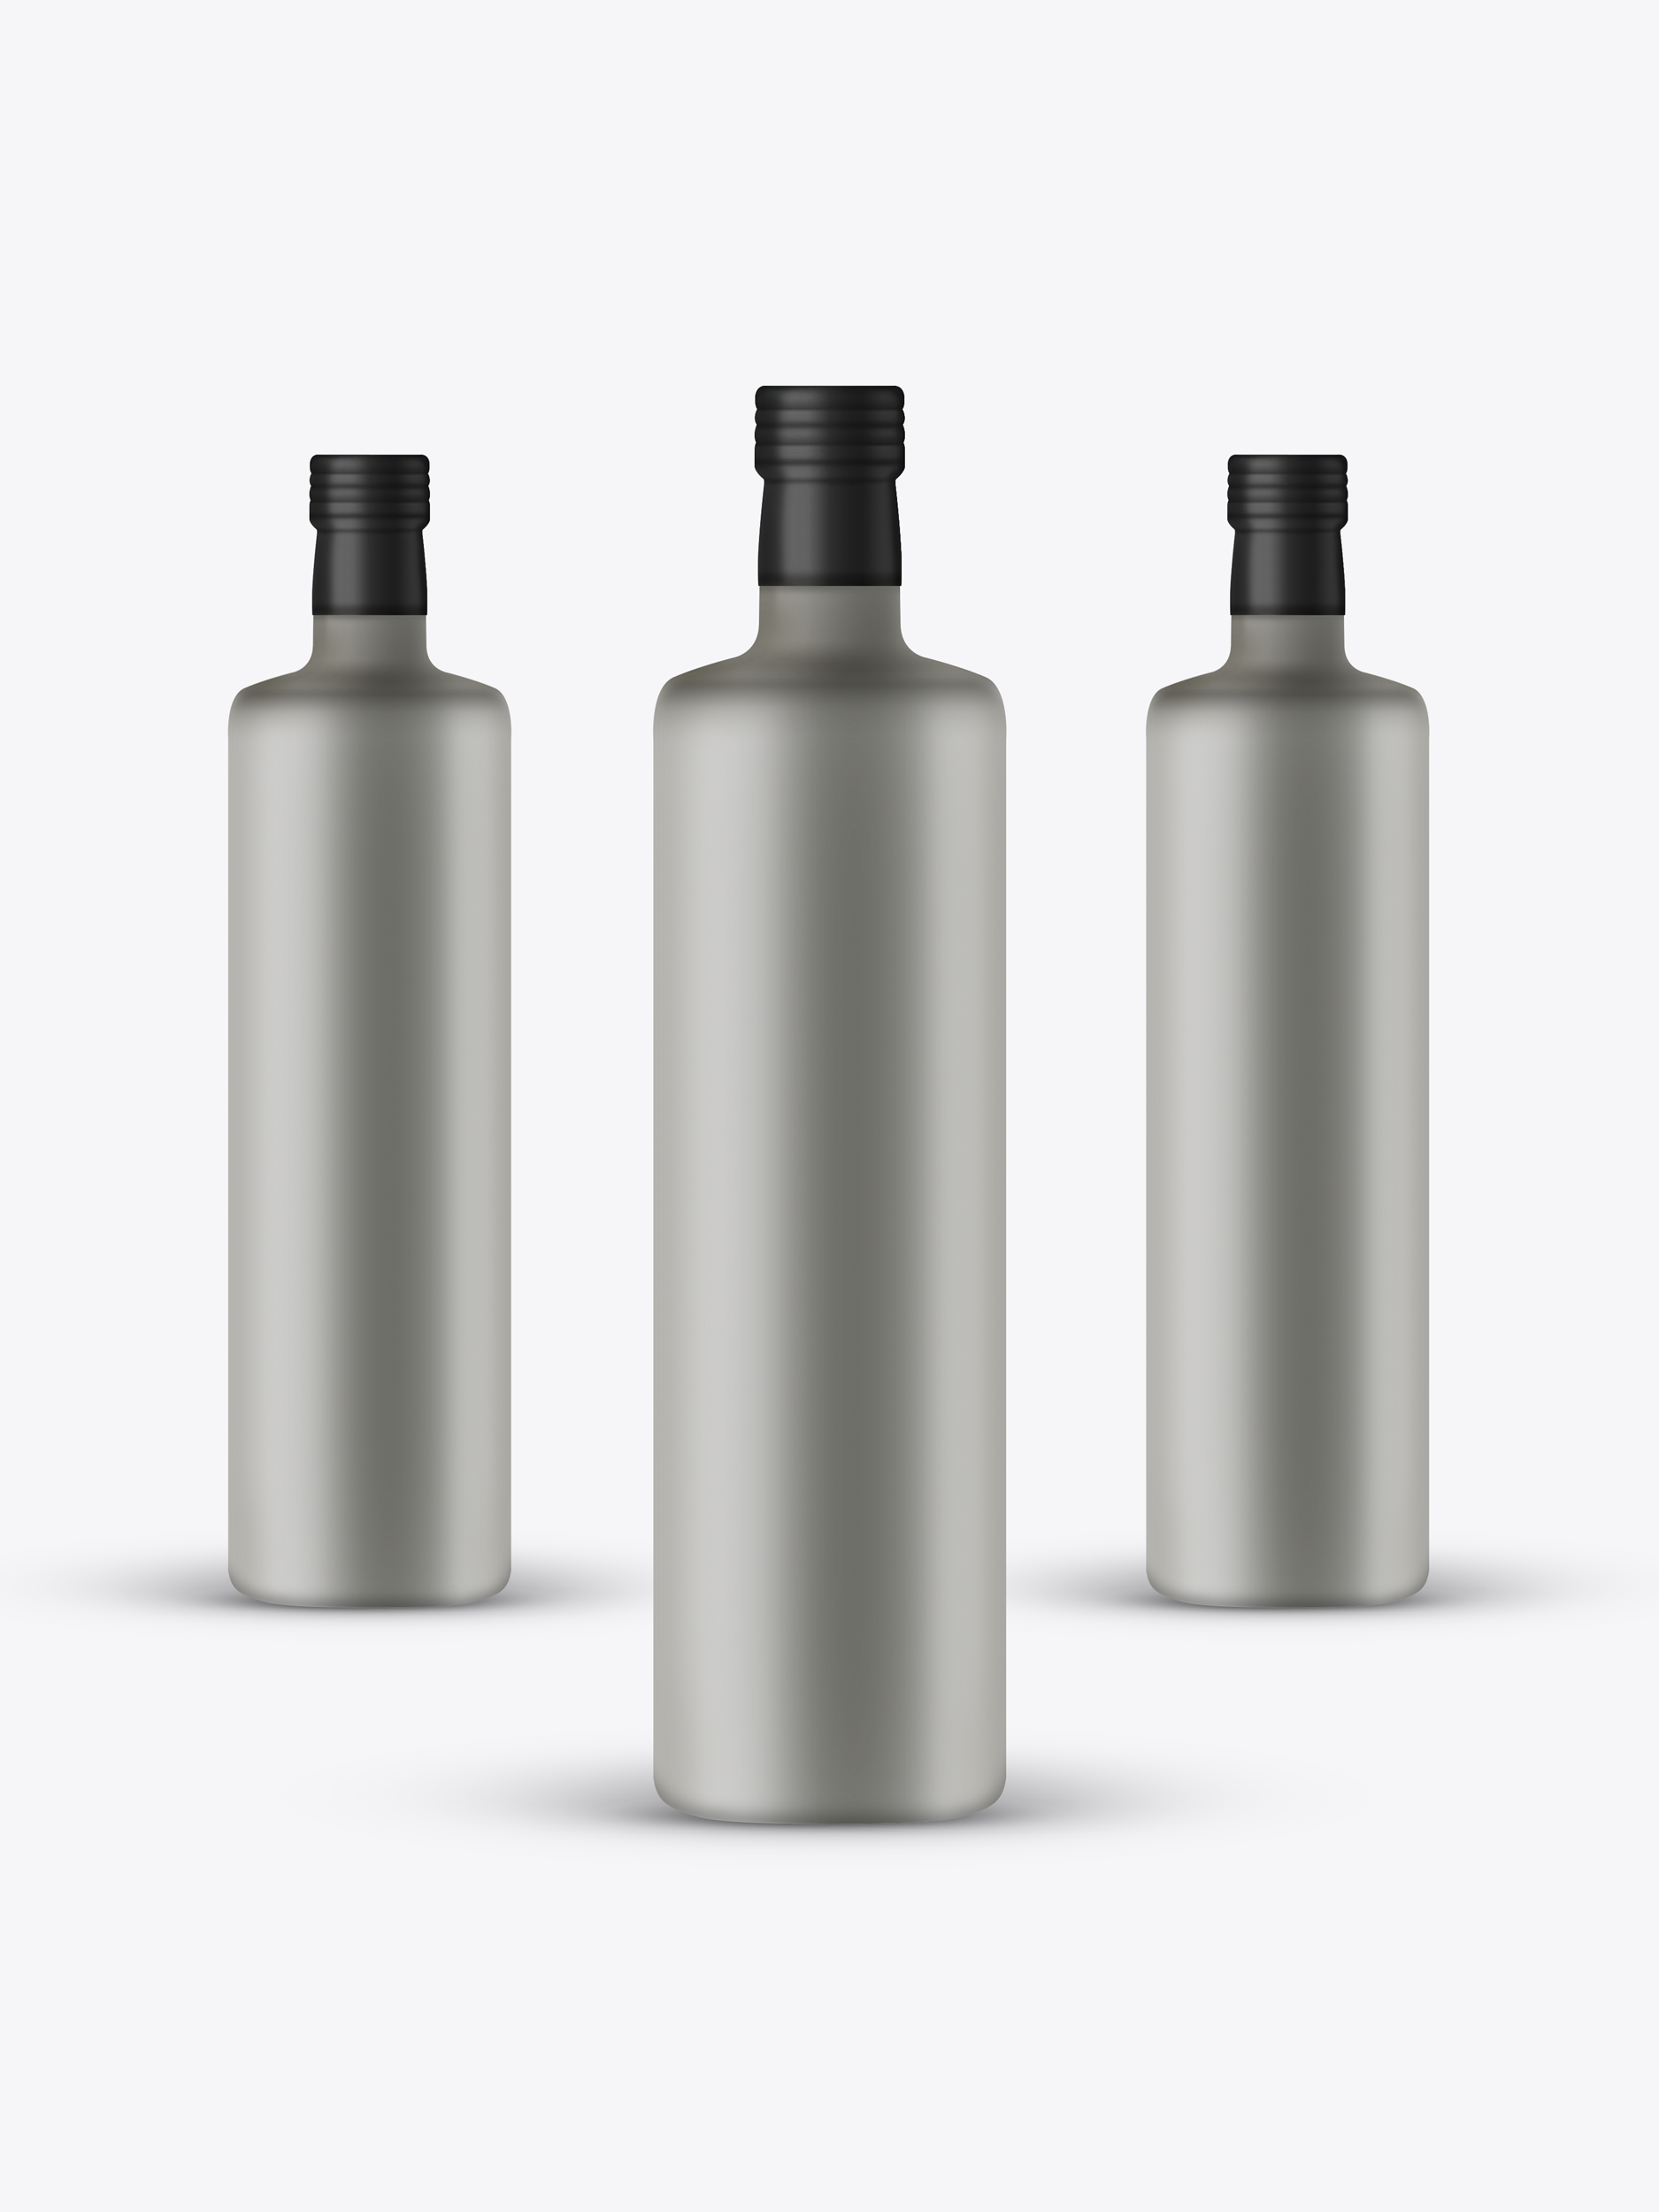 ceramic-bottle-mockup-psd